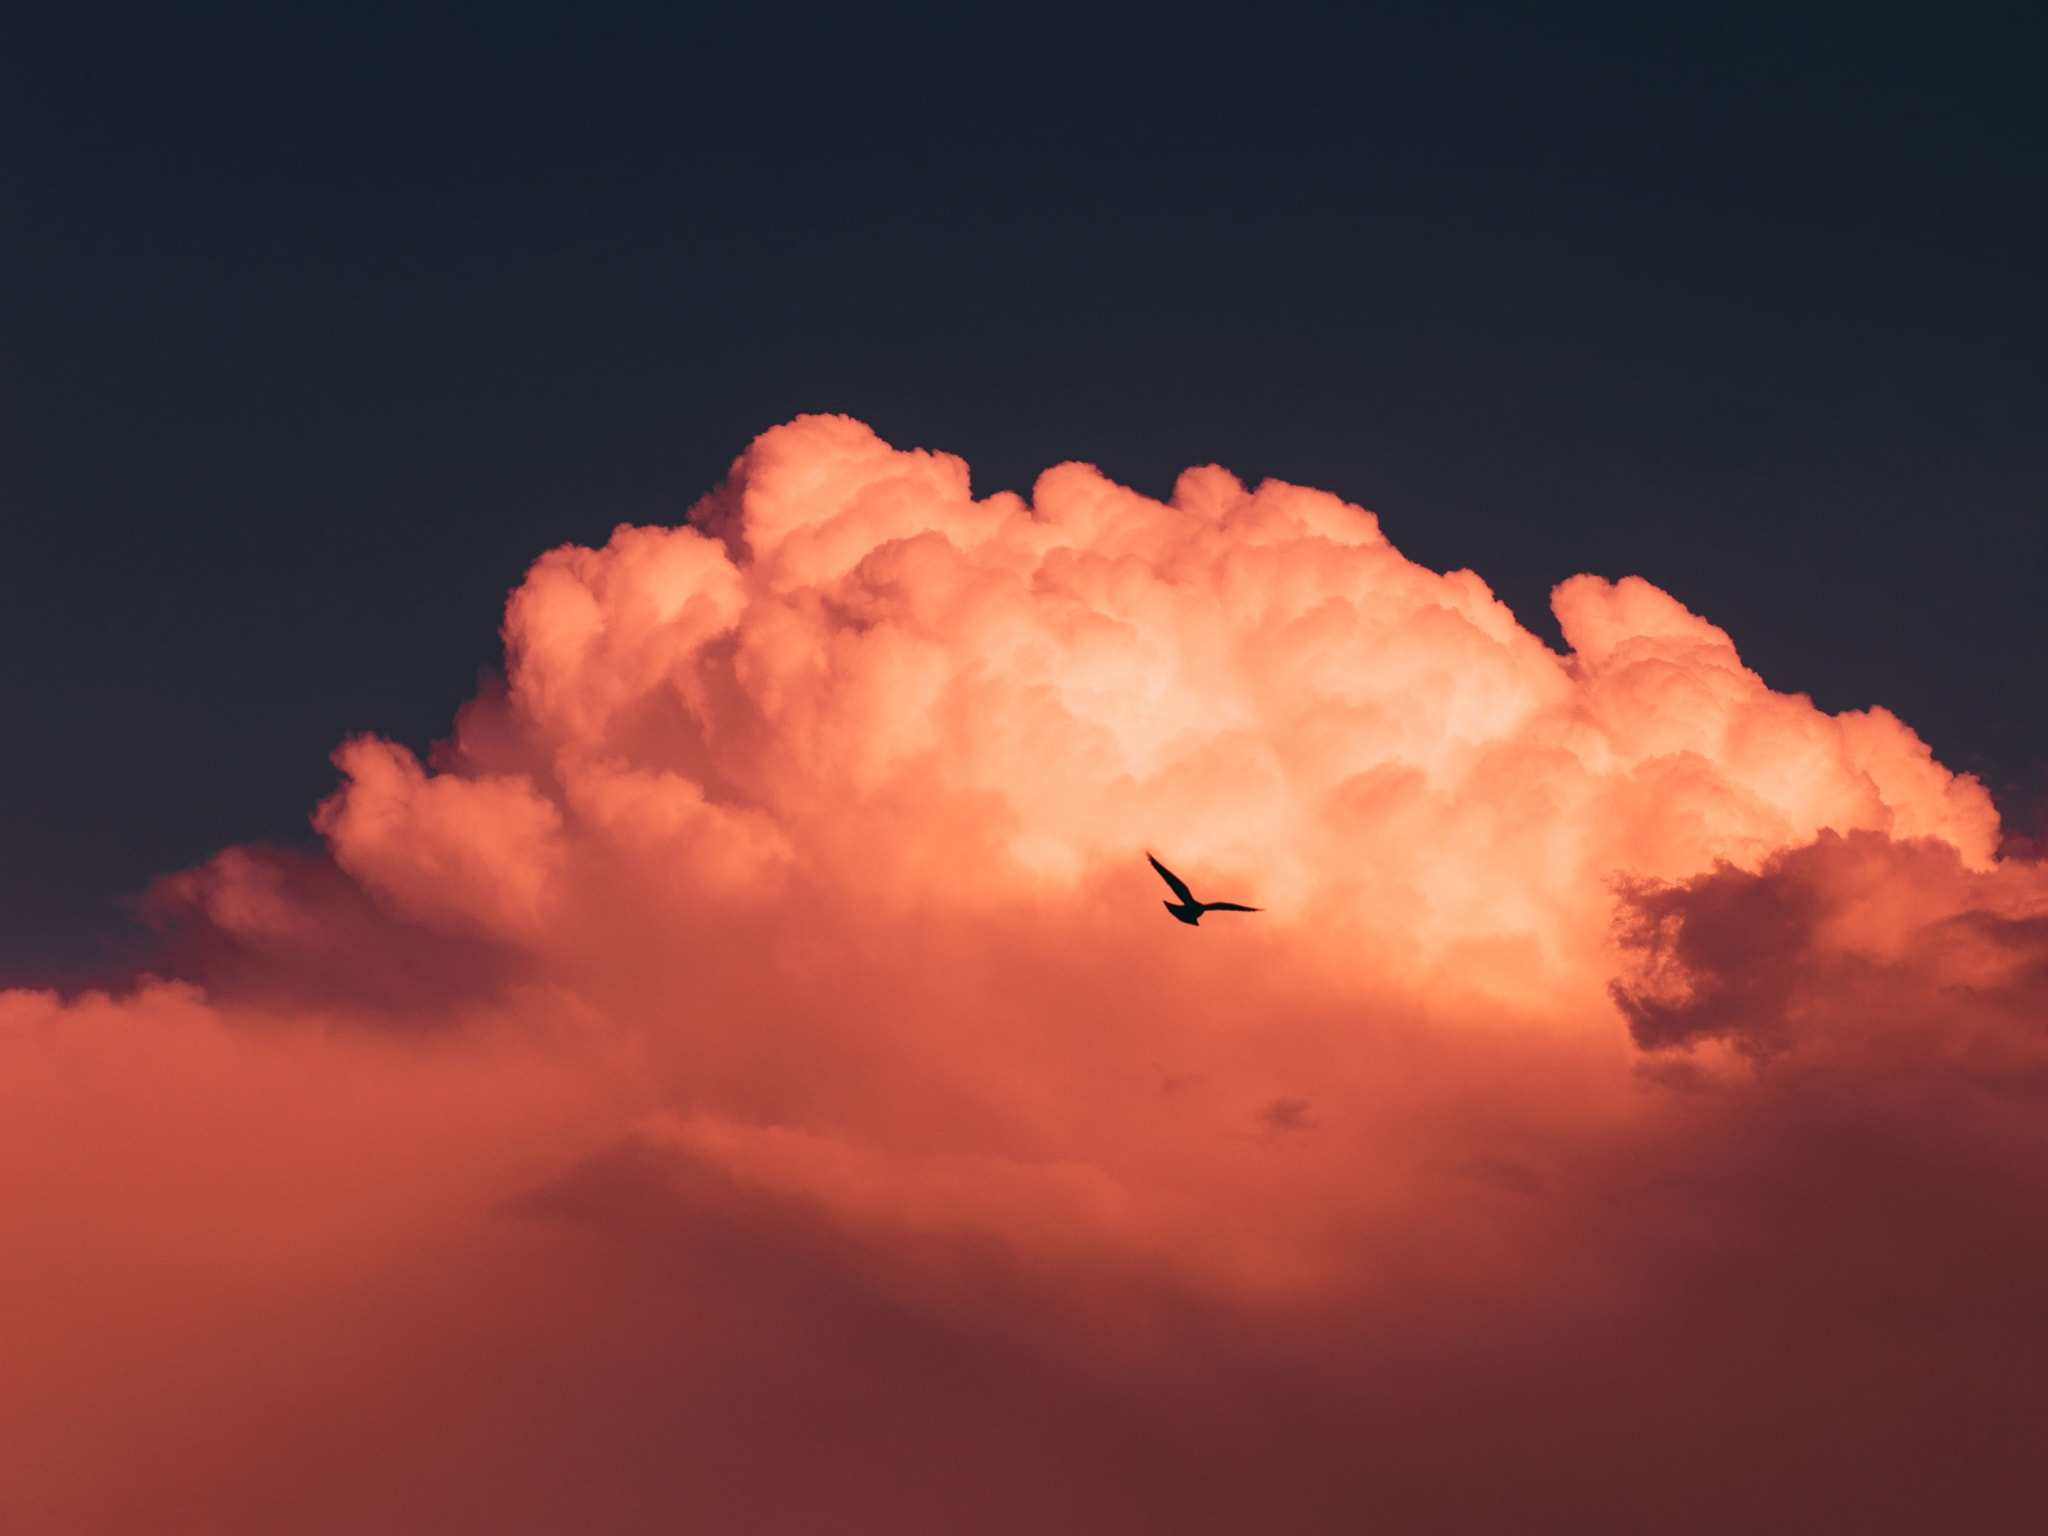 A silhouette of a bird against a cloud in the sky at sunset.